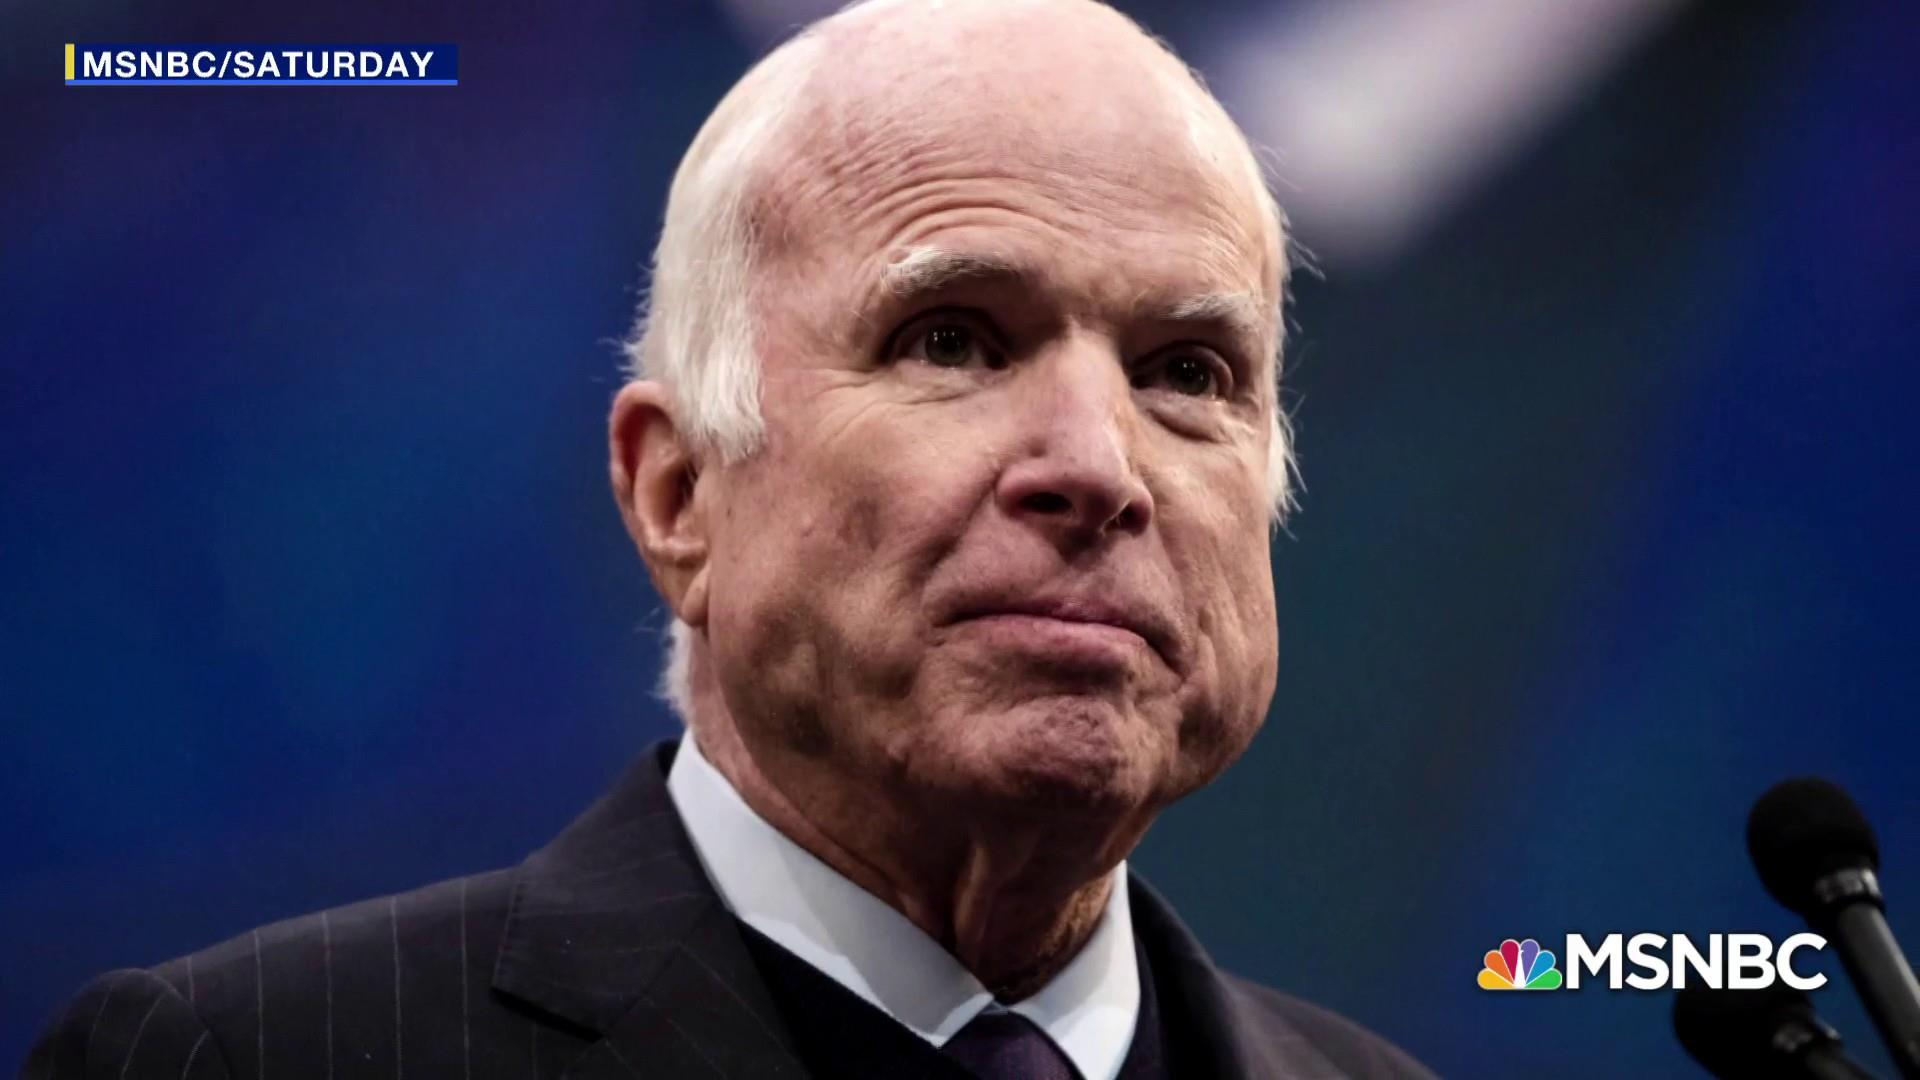 John McCain planned funeral as repudiation of Trump